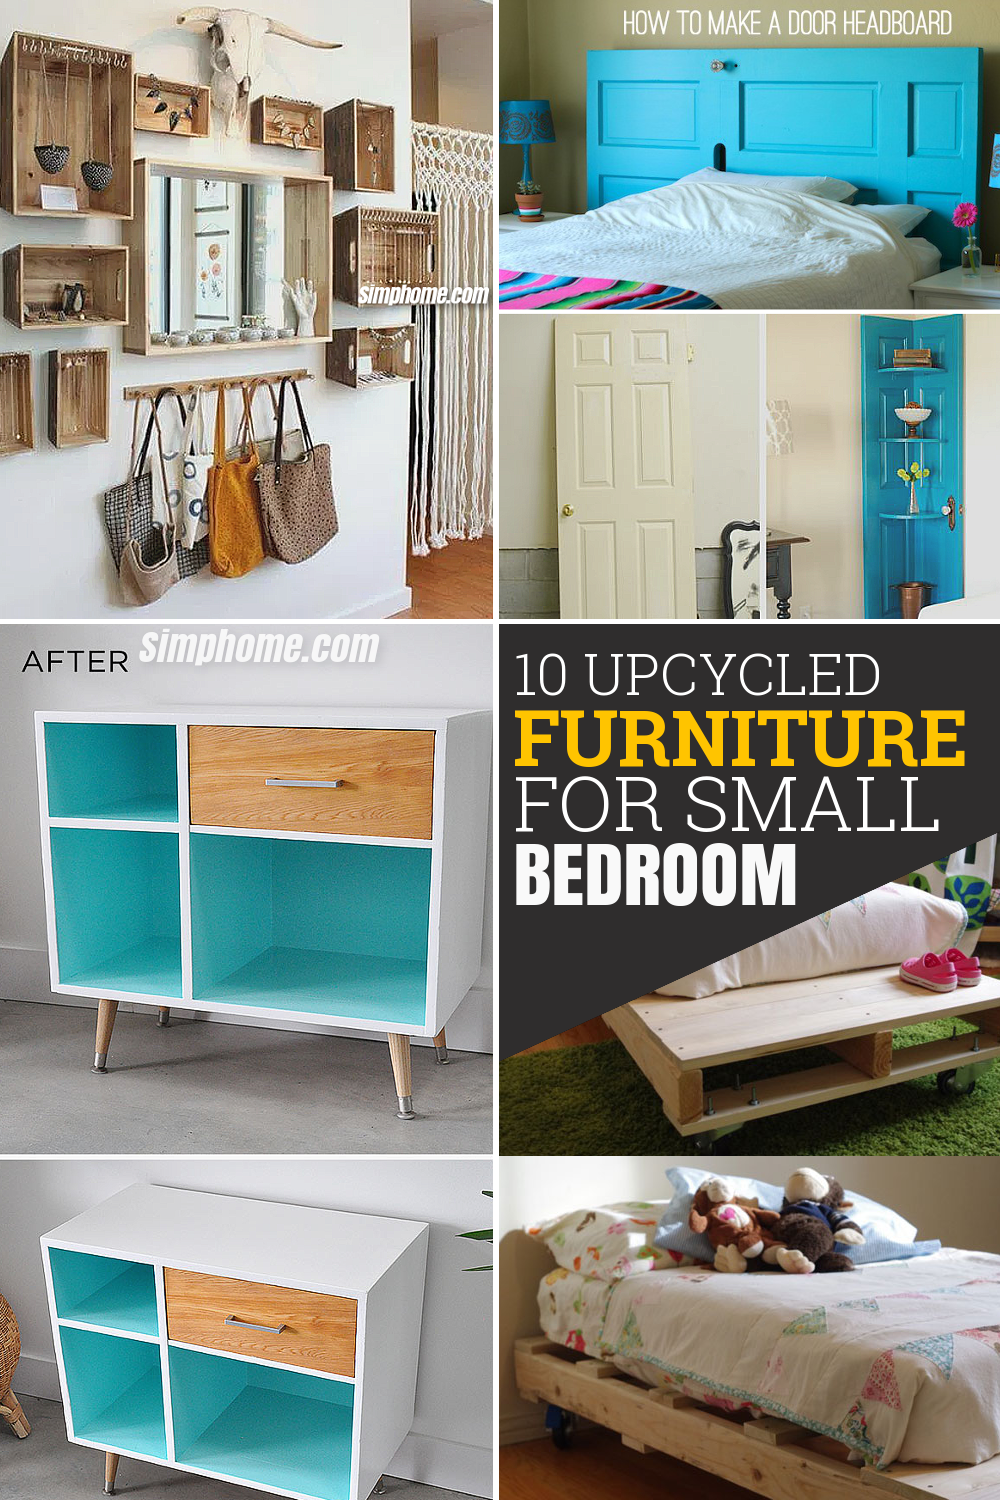 10 Upcycled Furniture Ideas for Small Bedroom via Simphome com Pinterest long image